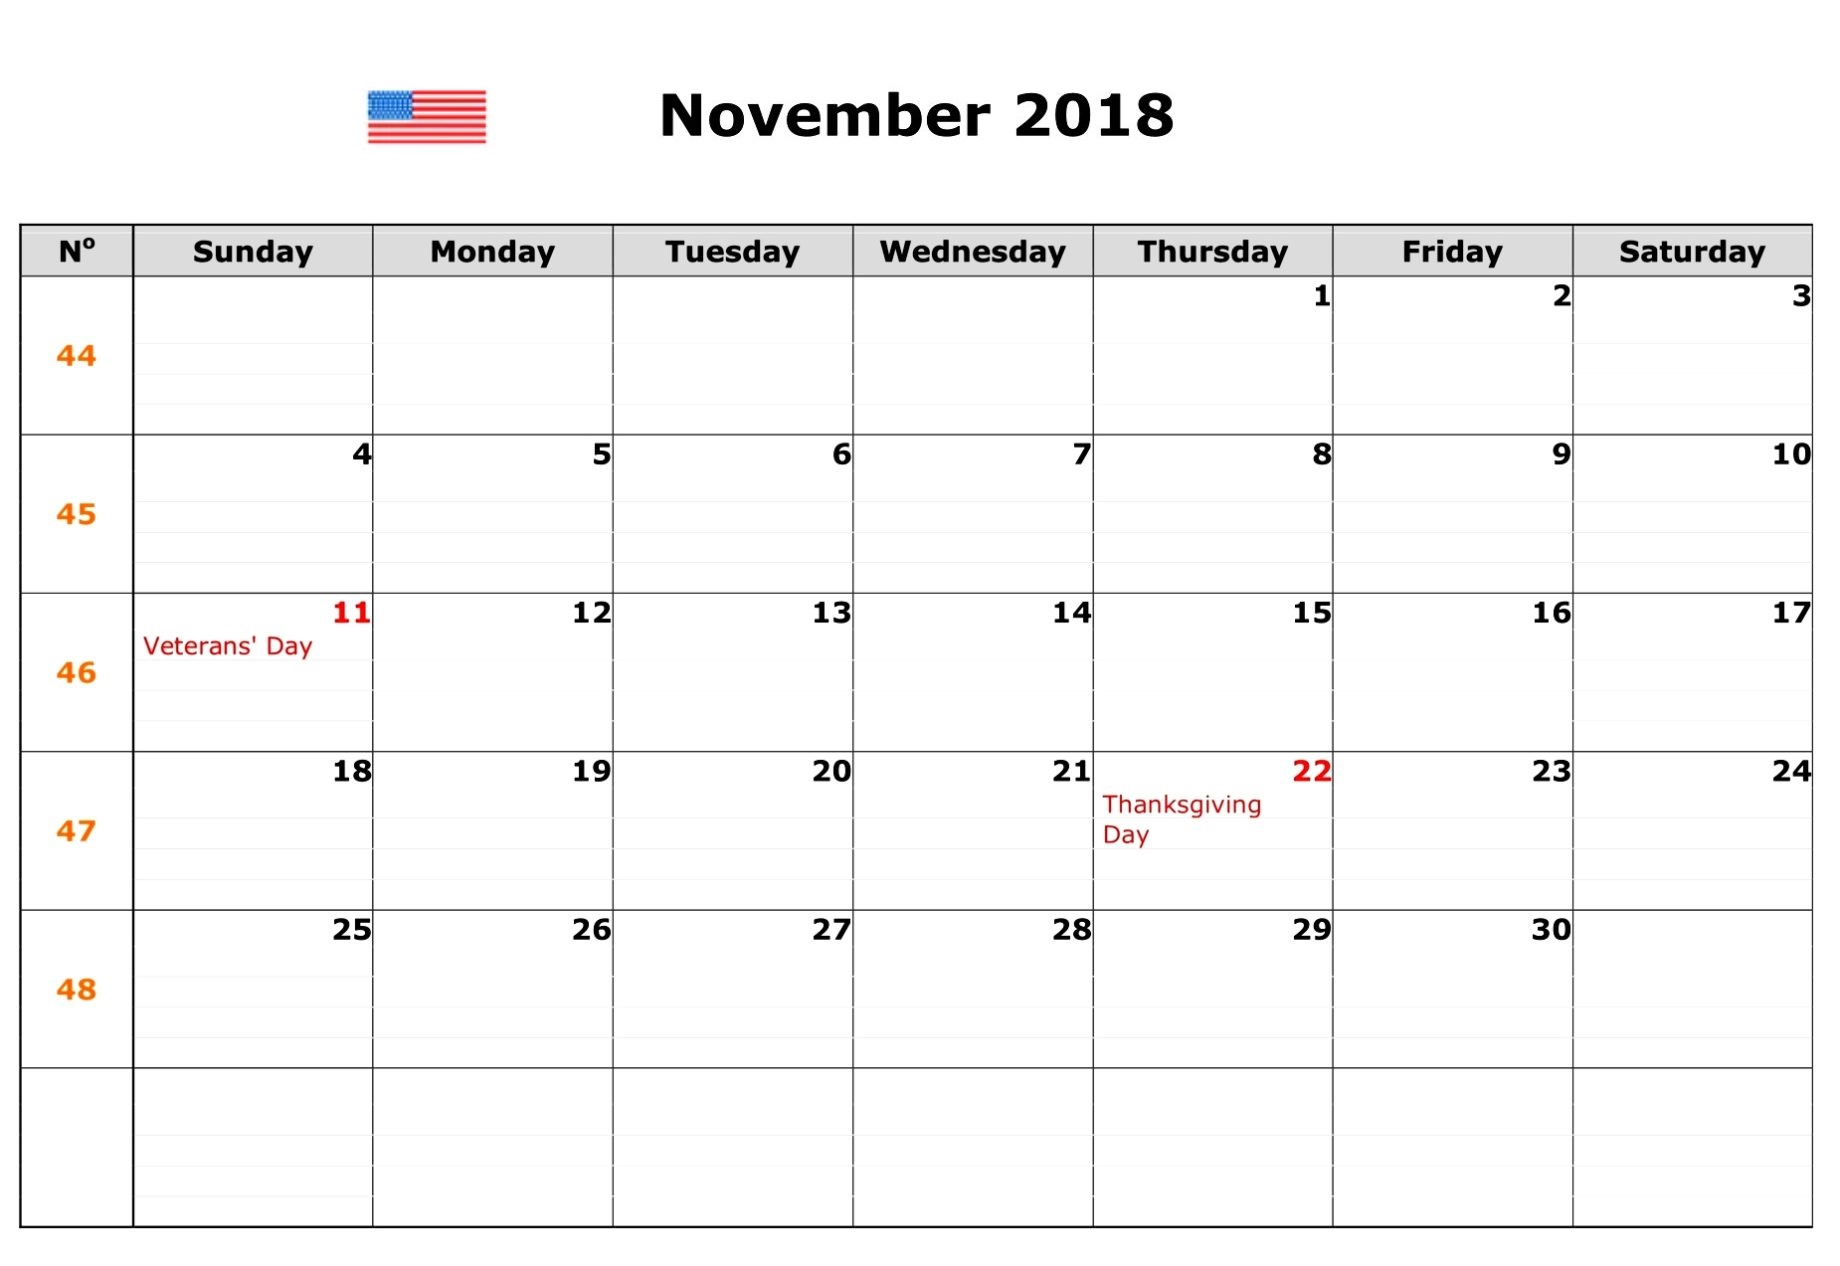 November 2018 Calendar USA Public Holidays